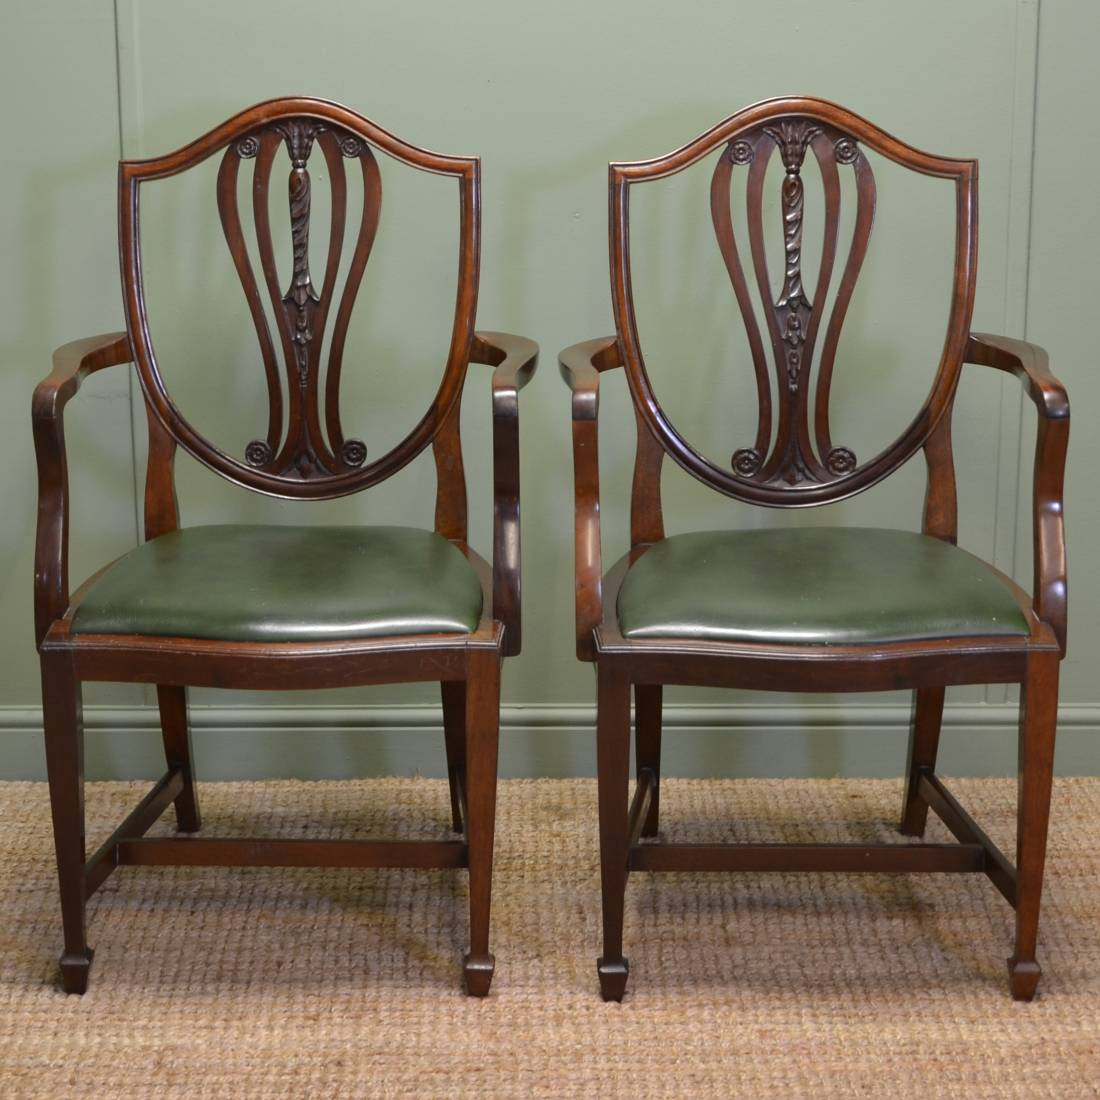 chair design antique soccer and ottoman pair of edwardian hepplewhite carver side